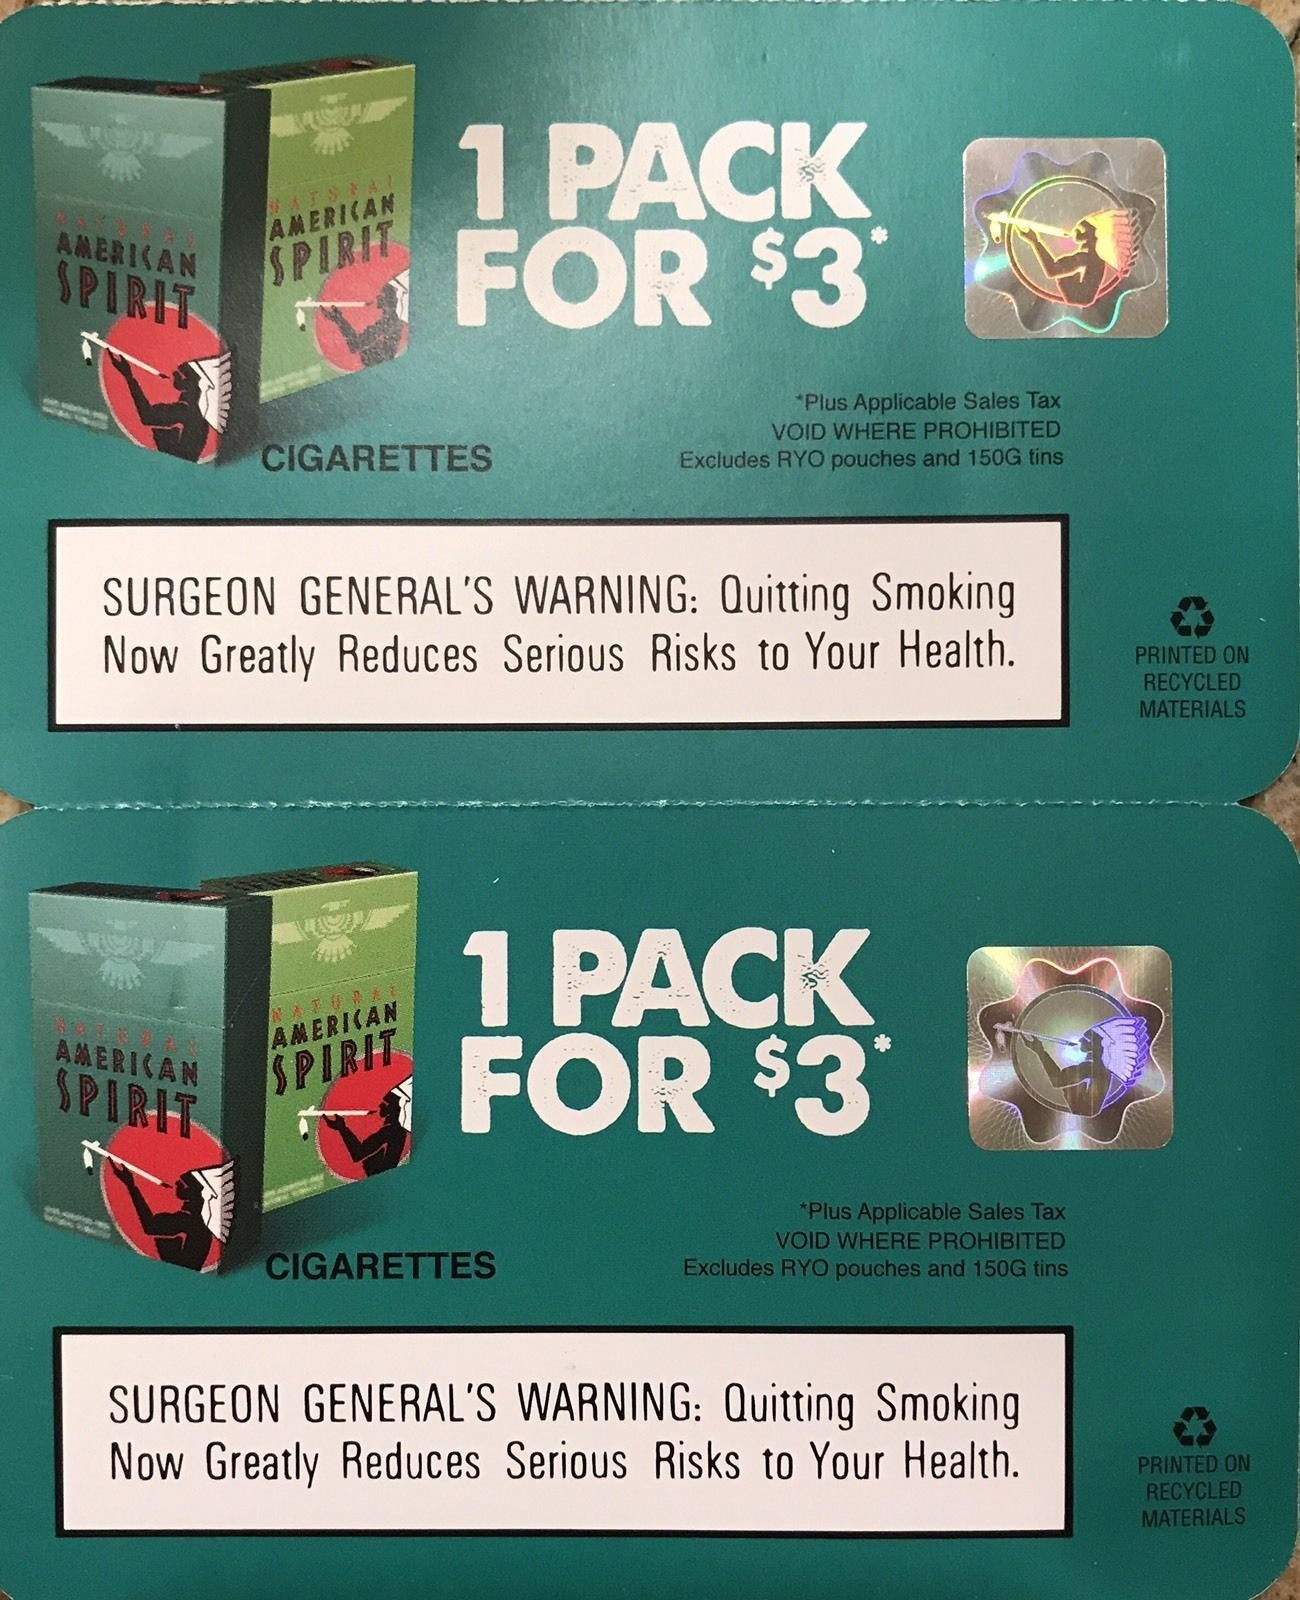 Free Pack Of Cigarettes Coupon - Wow - Image Results | My - Free Pack Of Cigarettes Printable Coupon